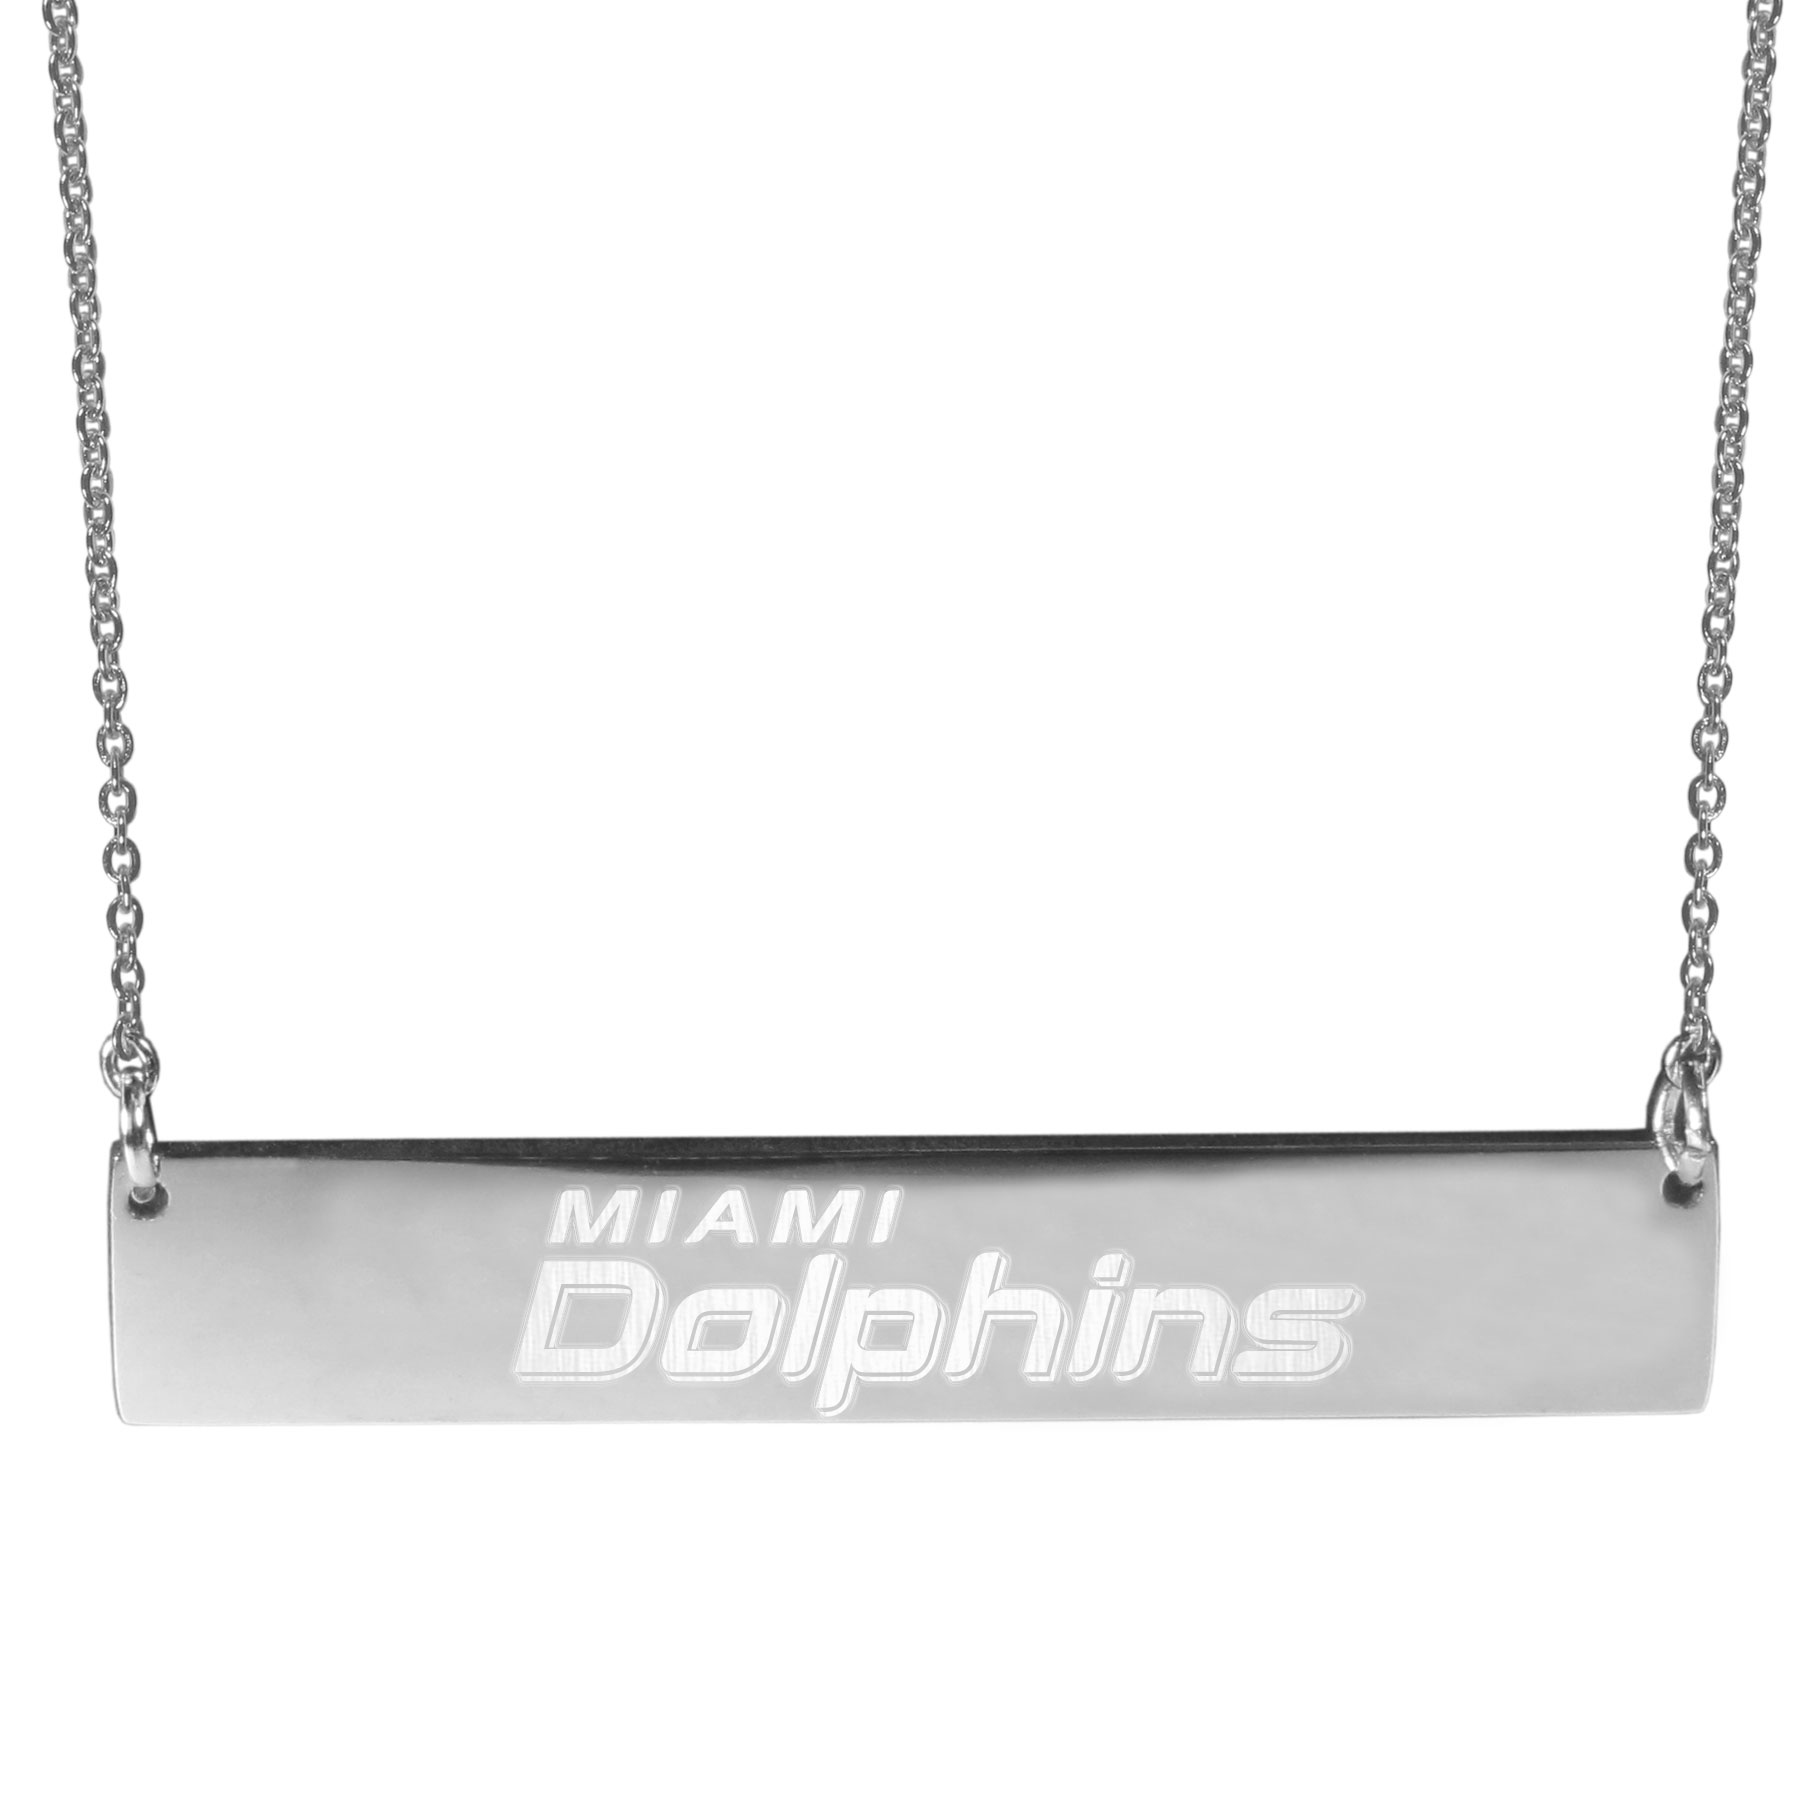 Miami Dolphins Bar Necklace - Simply beautiful Miami Dolphins bar necklace on a 20 inch link chain with 2 inch adjustable extender. This light-weight bar necklace has a stylish silver colored finish with the team name expertly etched on the 1.5 inch bar. Every female  fan will enjoy this contempory fashion accessory.